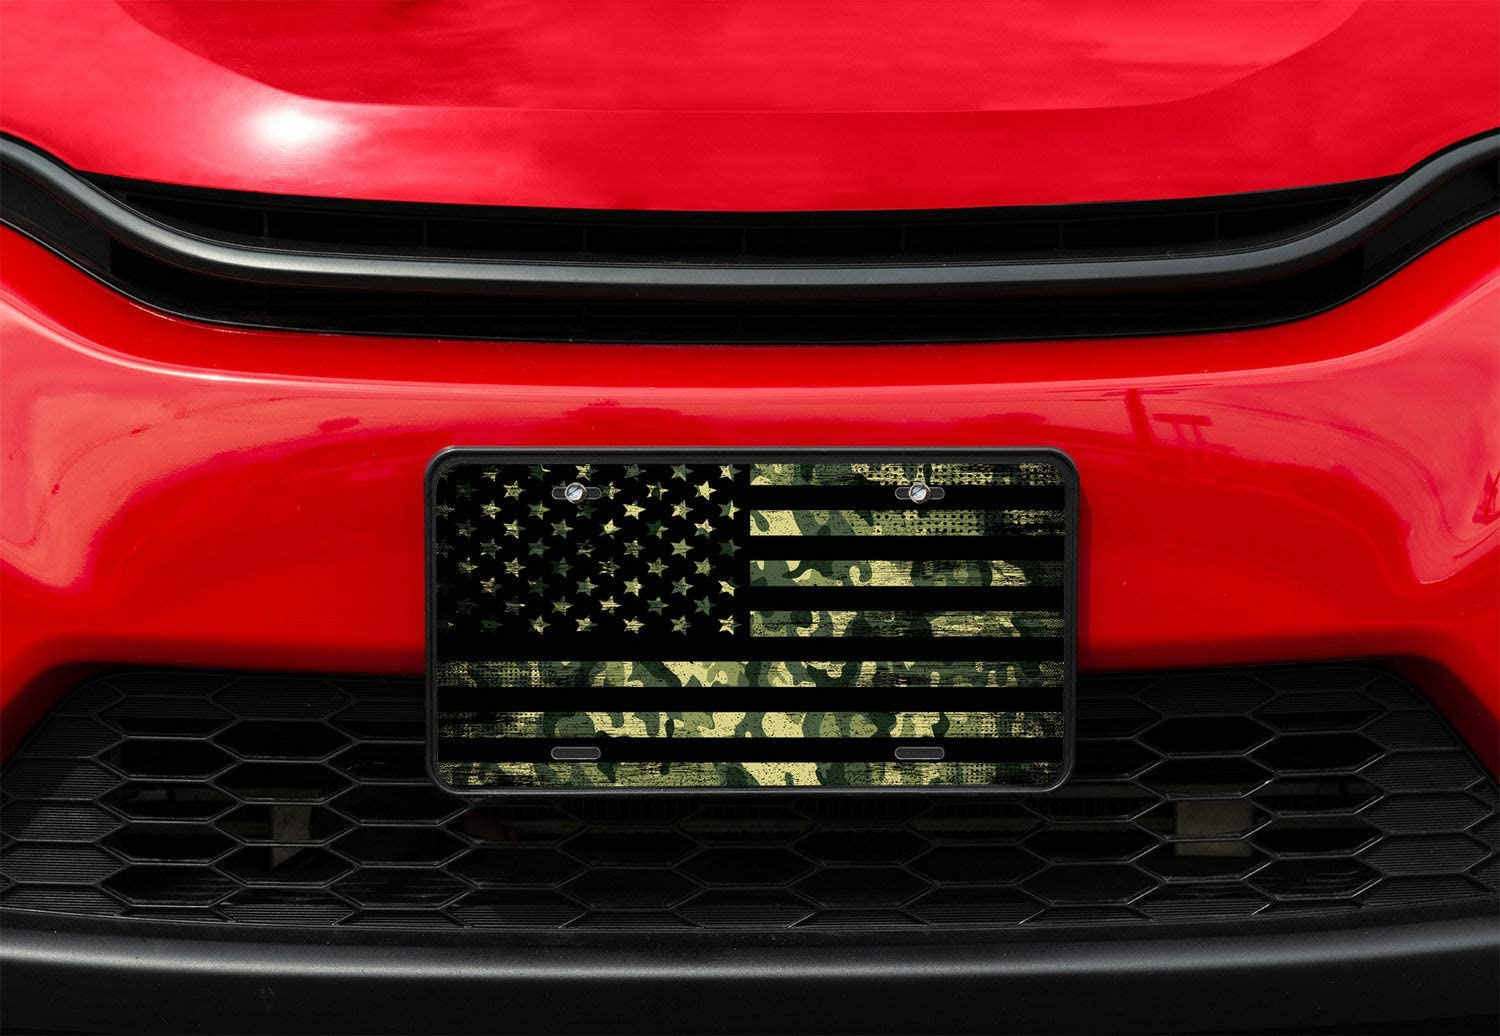 Amcove License Plate American Flag with Camouflage Decorative Car Front License Plate,Vanity Tag,Metal Car Plate,Aluminum Novelty License Plate for Men//Women//Boy//Girls Car,6 X 12 Inch